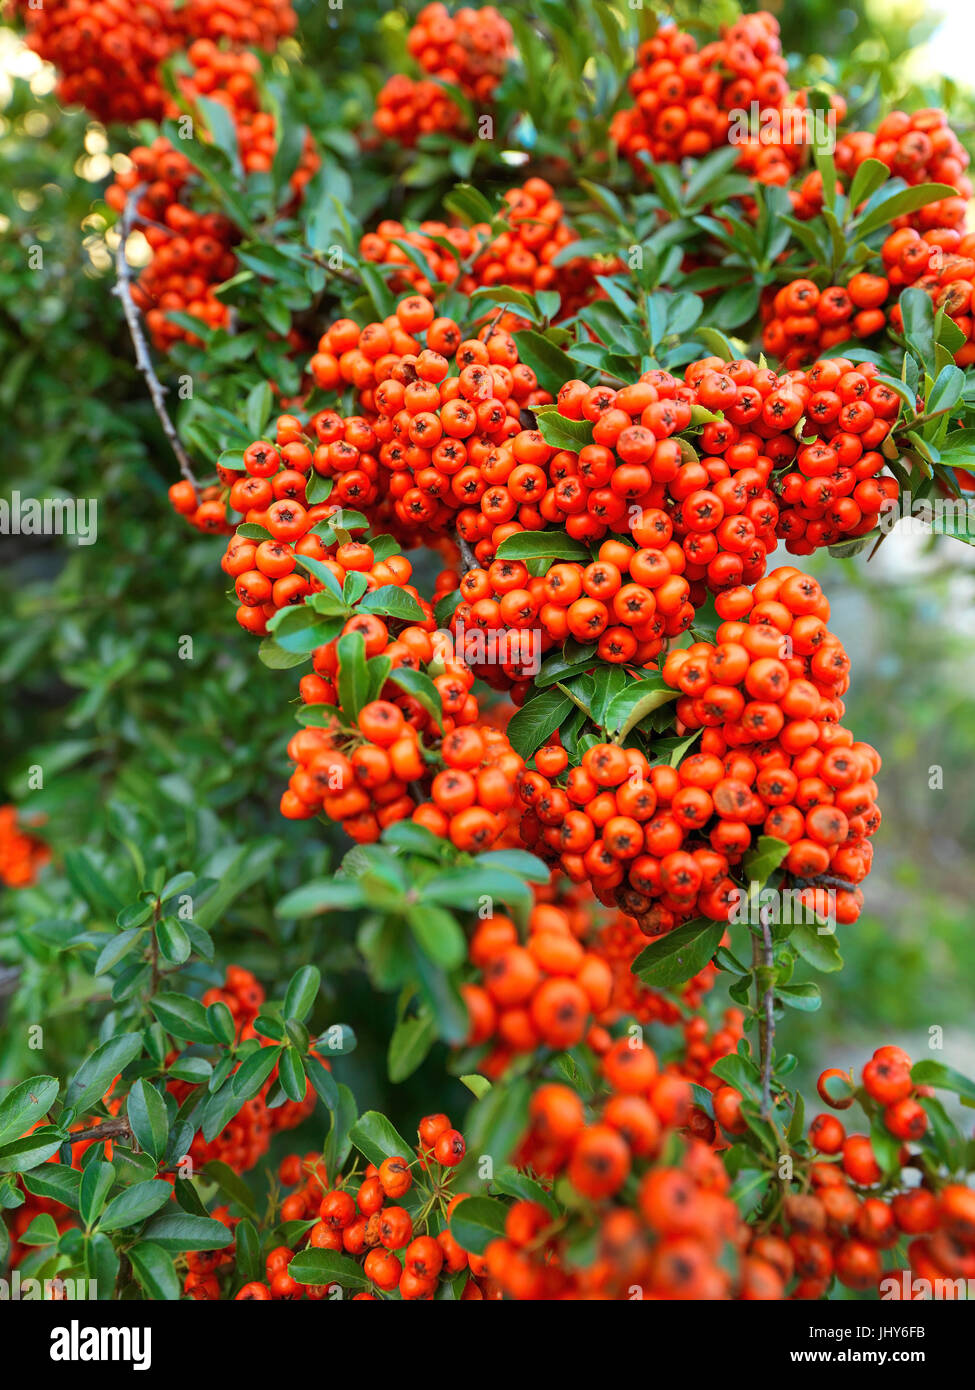 Fire thorn - Firethorn, Feuerdorn - Firethorn Stock Photo